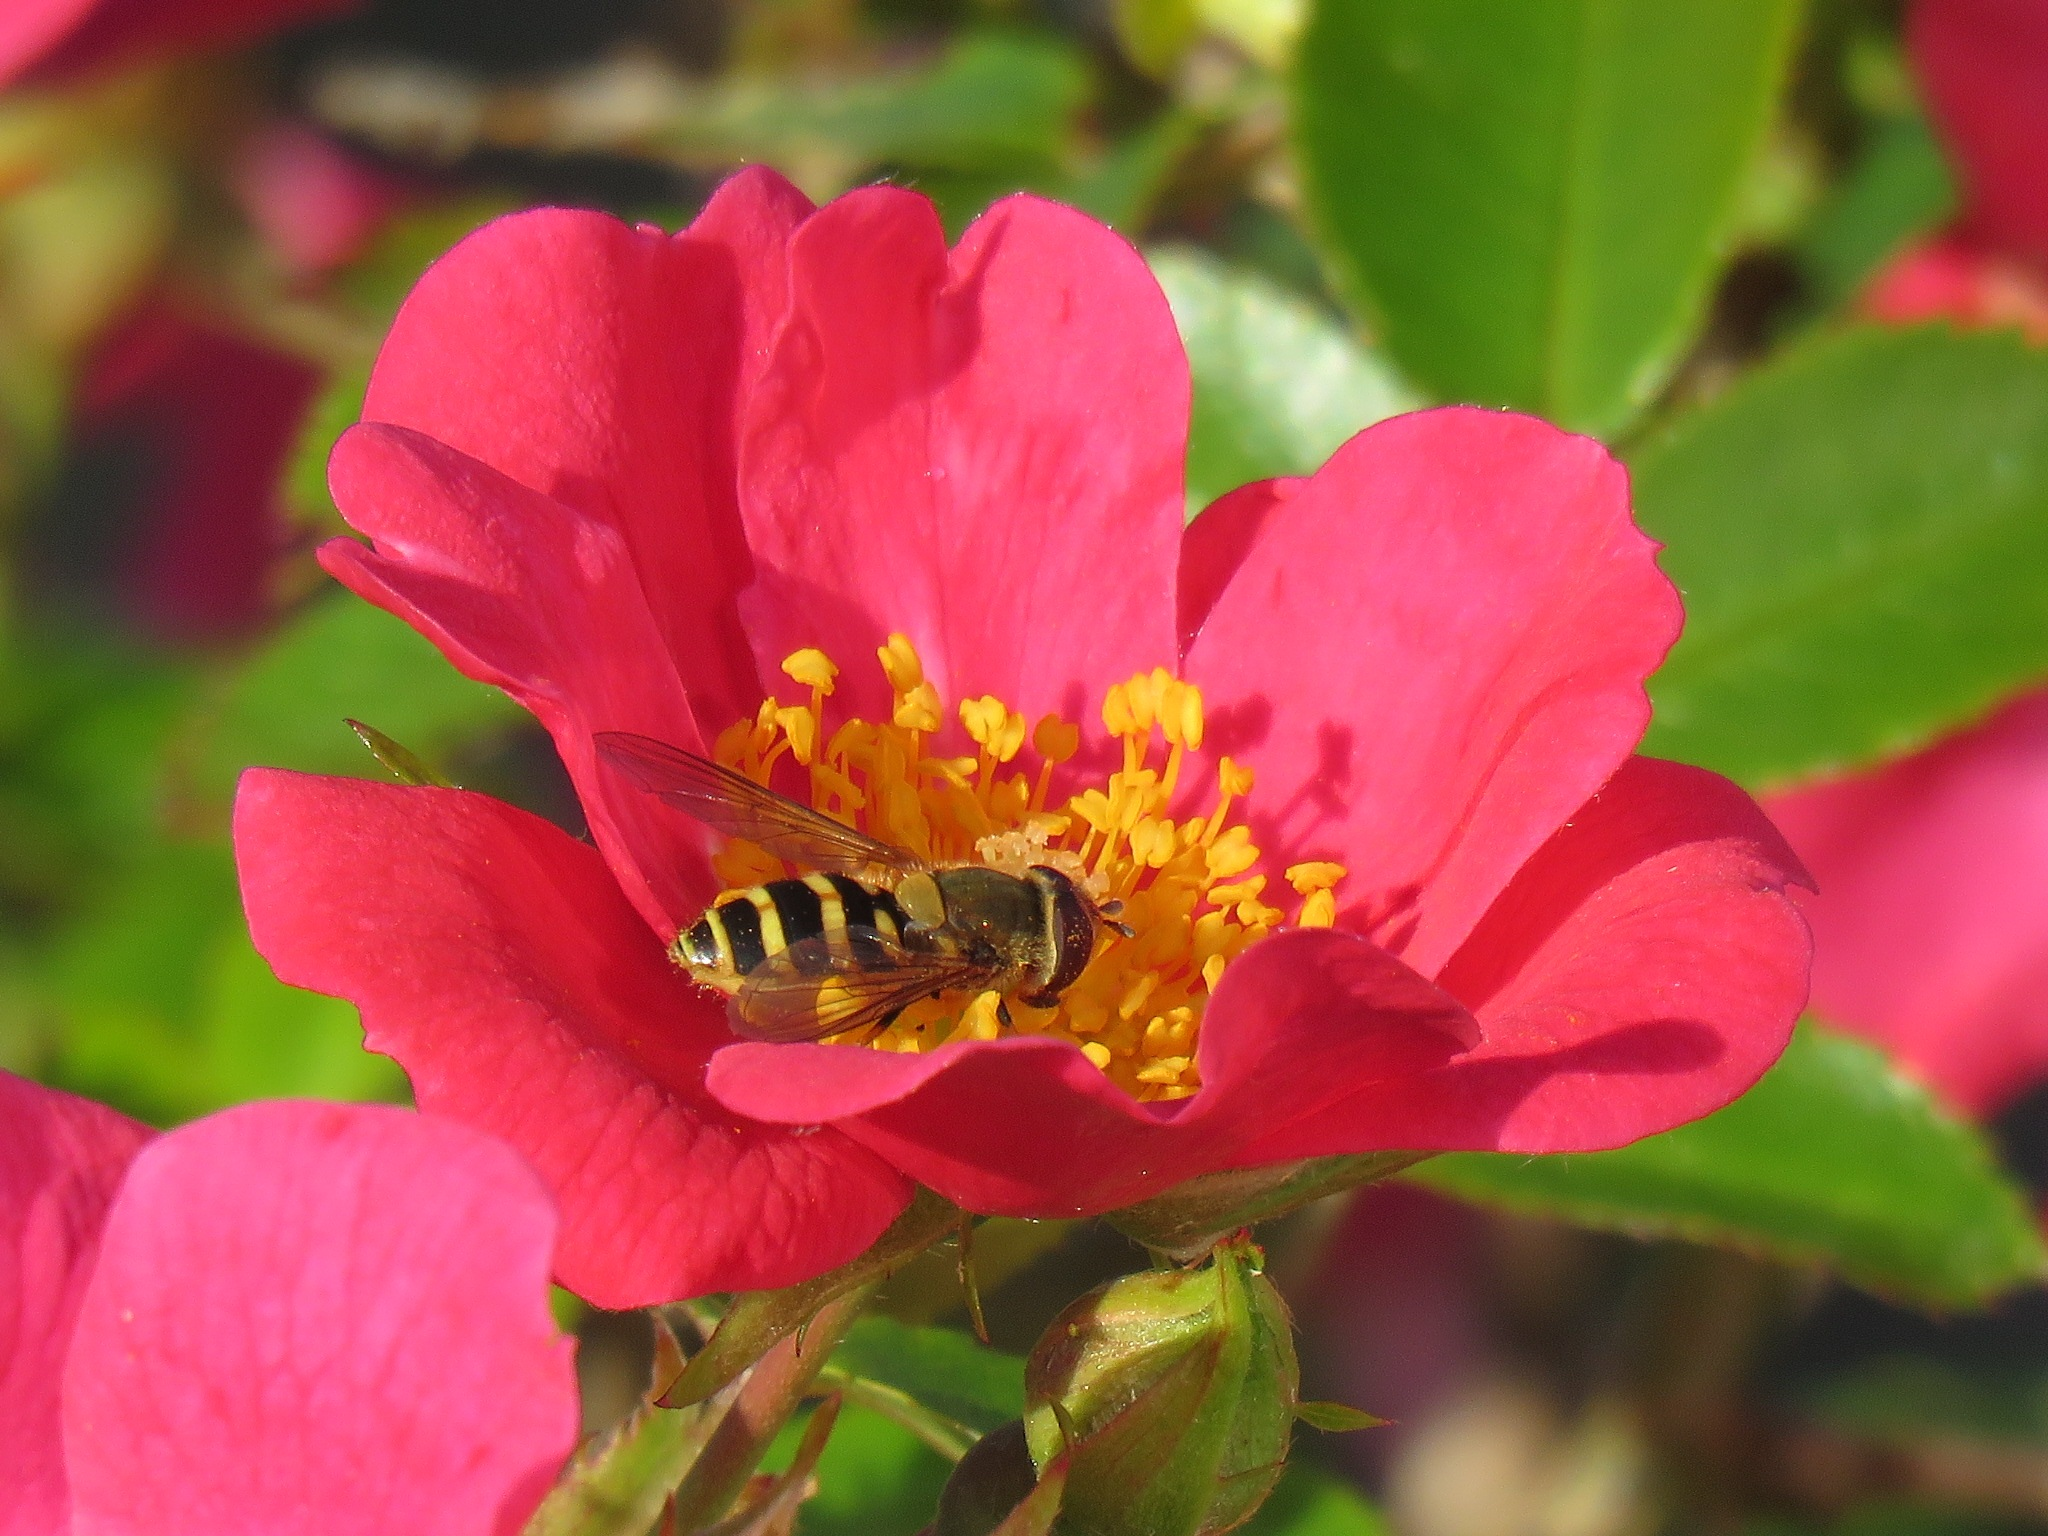 #Rose and hoverfly by marit